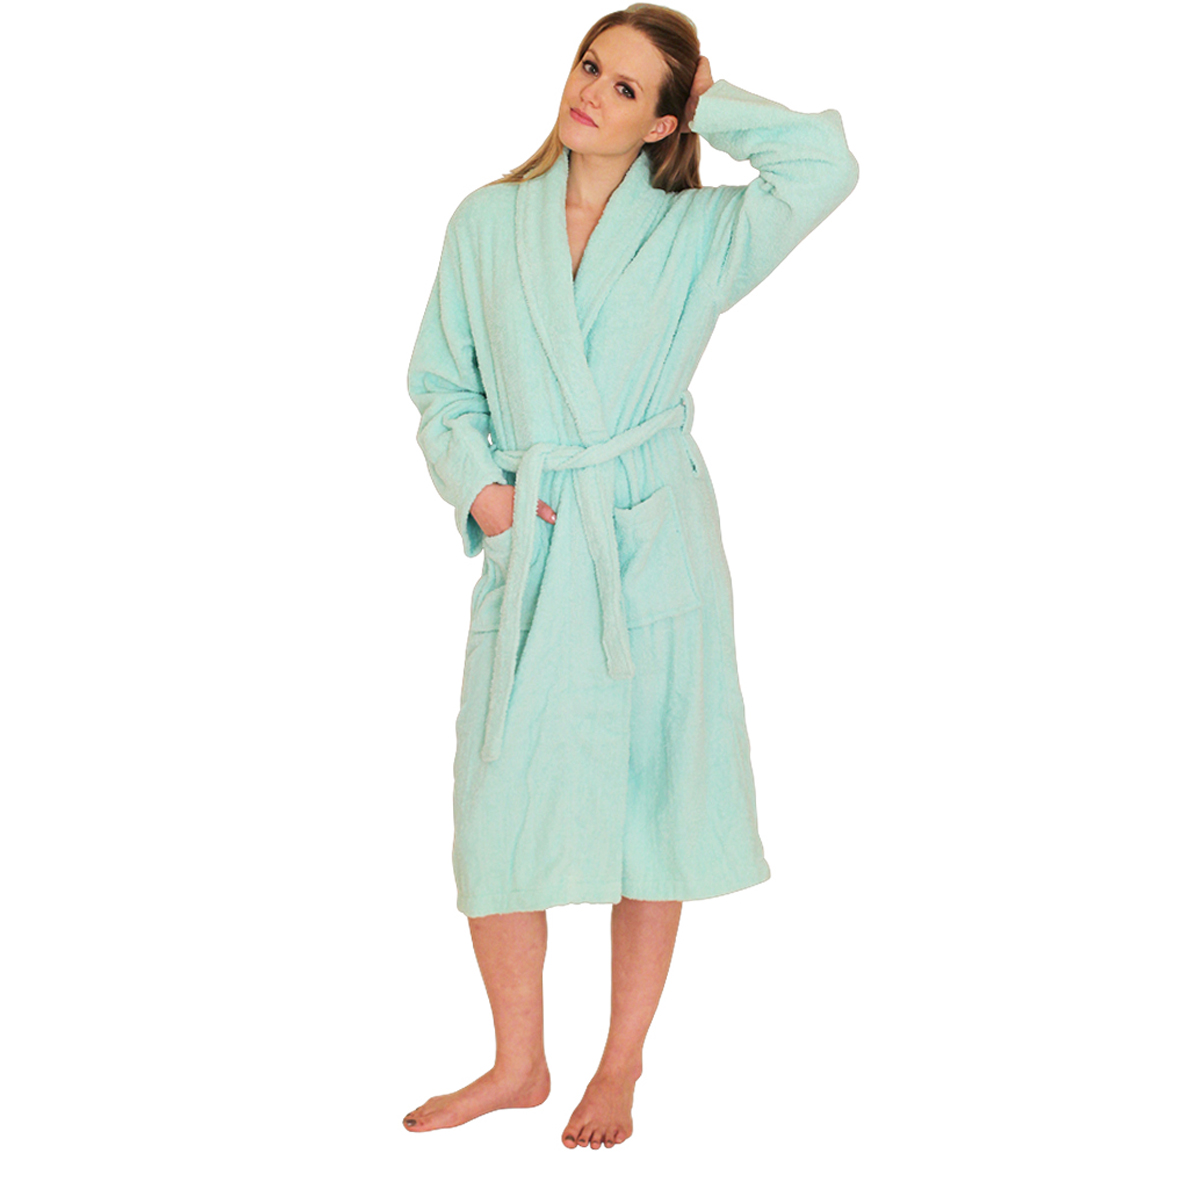 52cb9f0da2 Bathrobes Terry cloth robes for women from  15 Spa Hotel quality ...